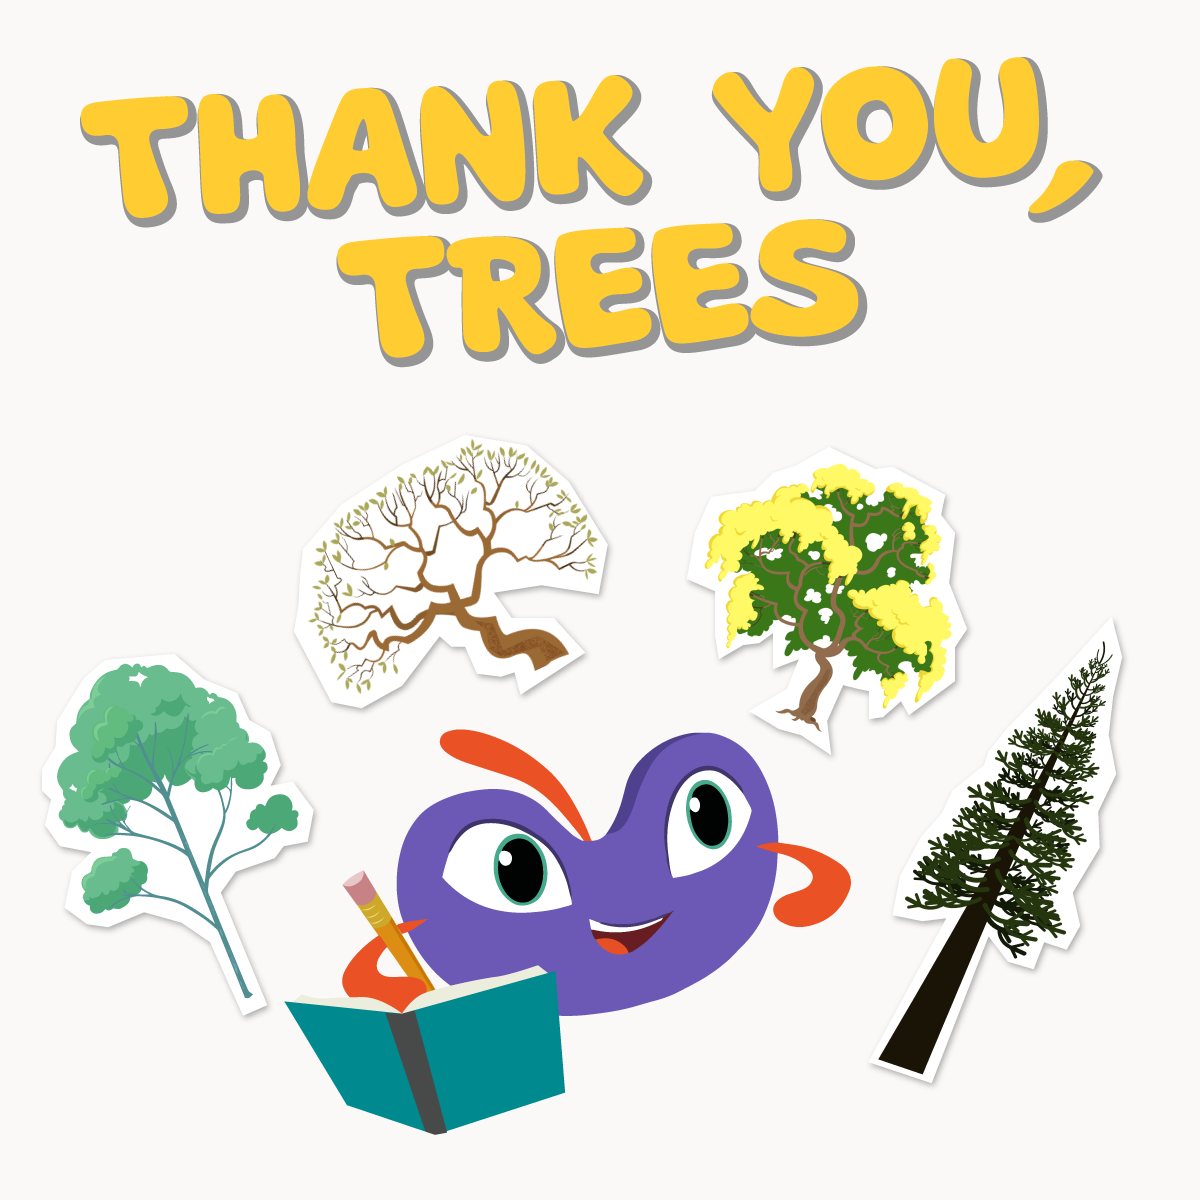 Thank you trees promotional graphic